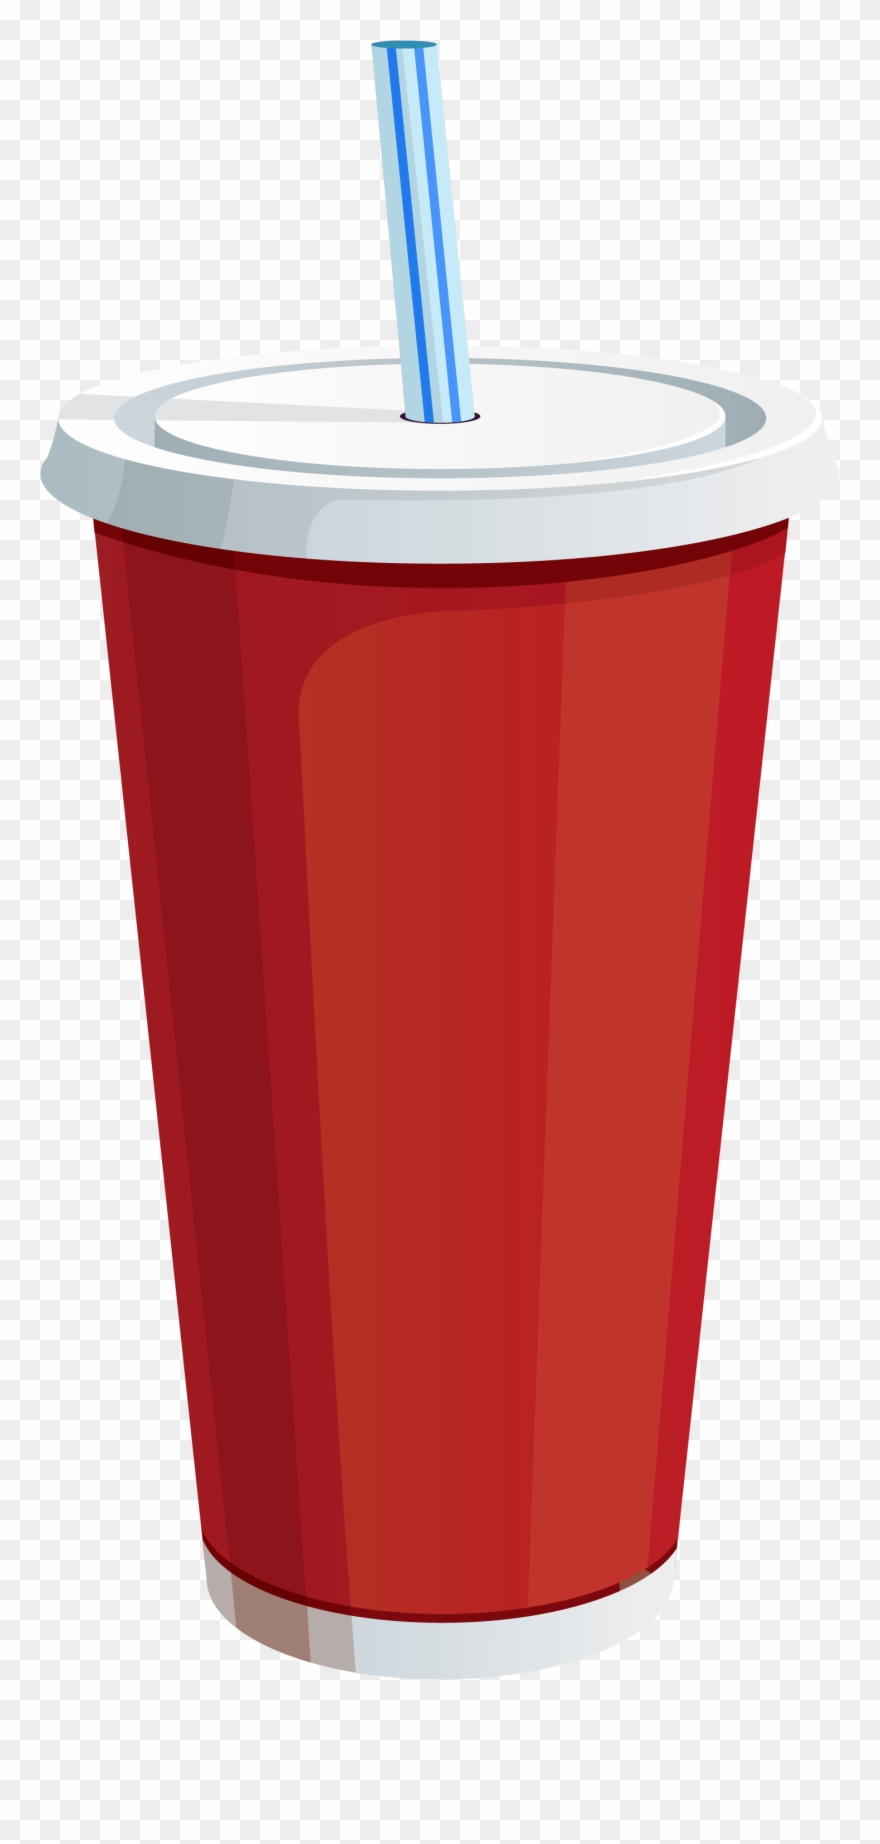 Banner Freeuse Download Soda Cup Clipart - Drinks In Cup Png ... image royalty free stock